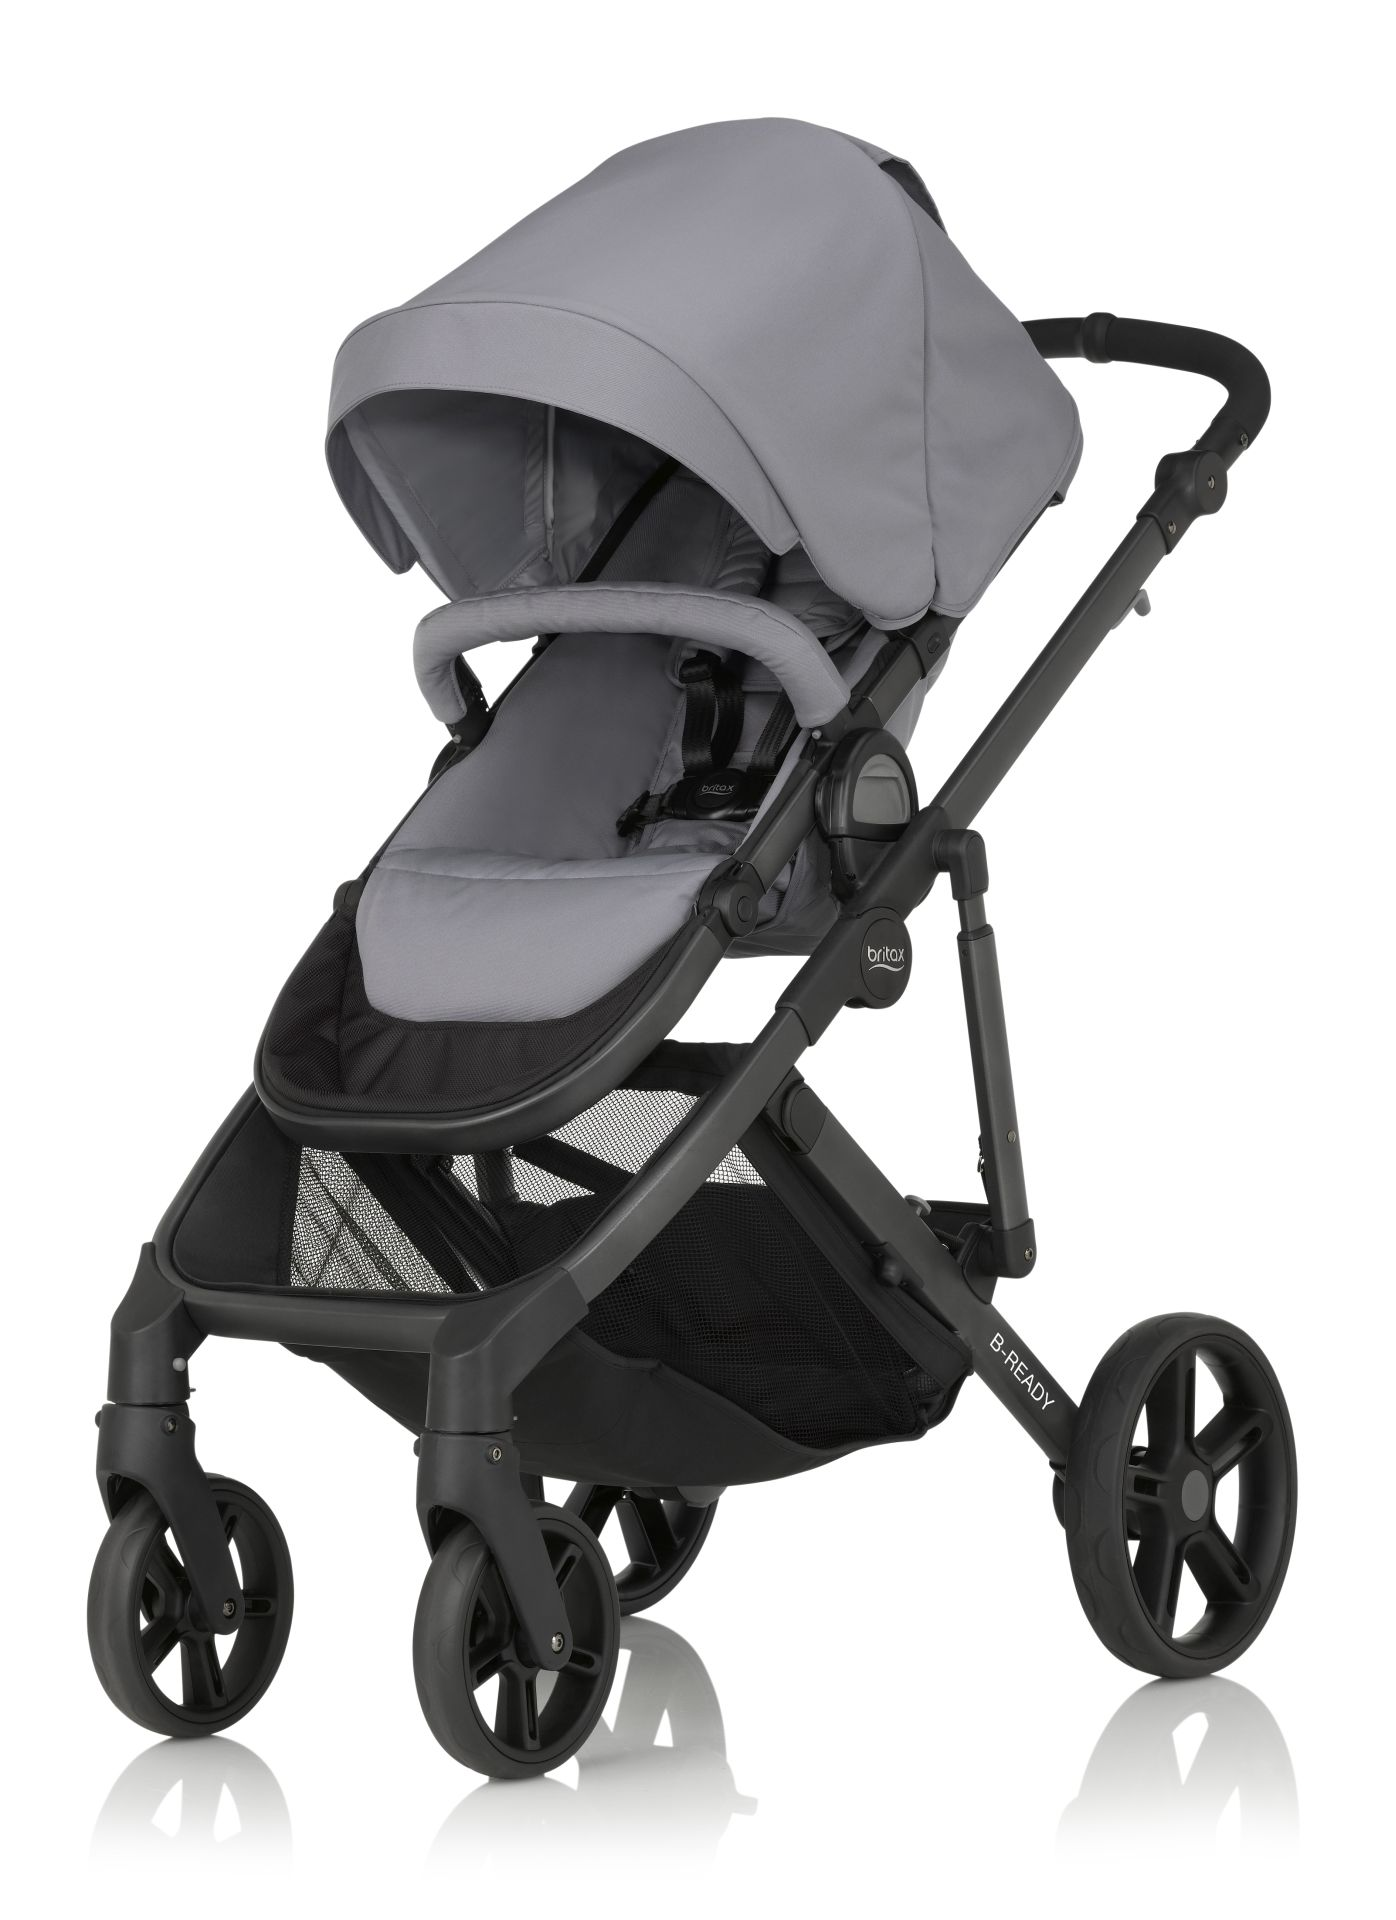 britax r mer b ready 2018 steel grey buy at kidsroom strollers. Black Bedroom Furniture Sets. Home Design Ideas